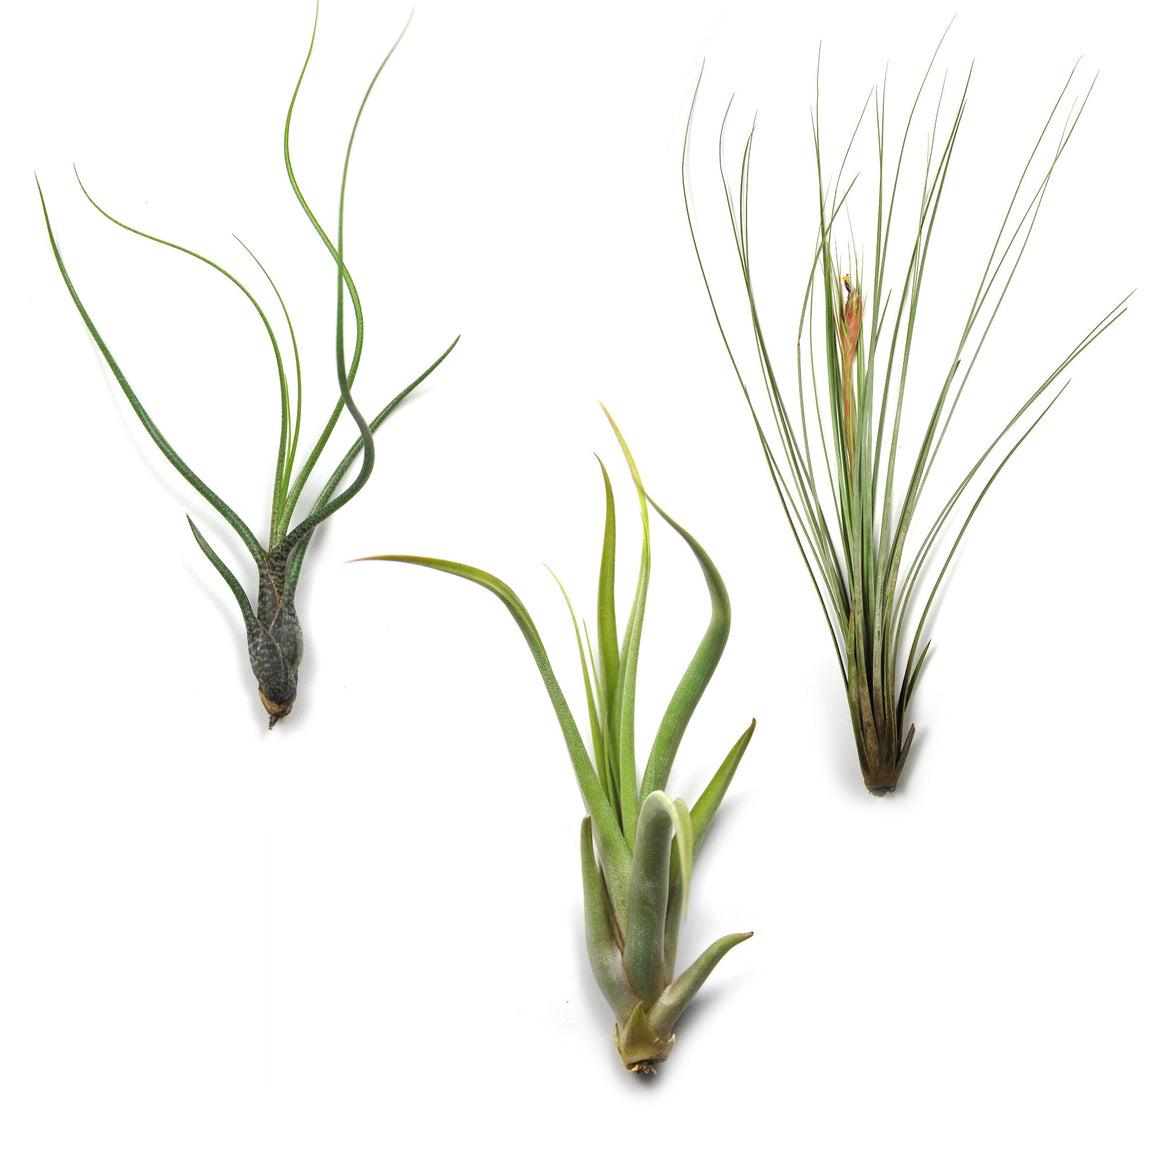 SALE - Long & Lovely Collection - Set of 9 or 18 Air Plants - 50% Off